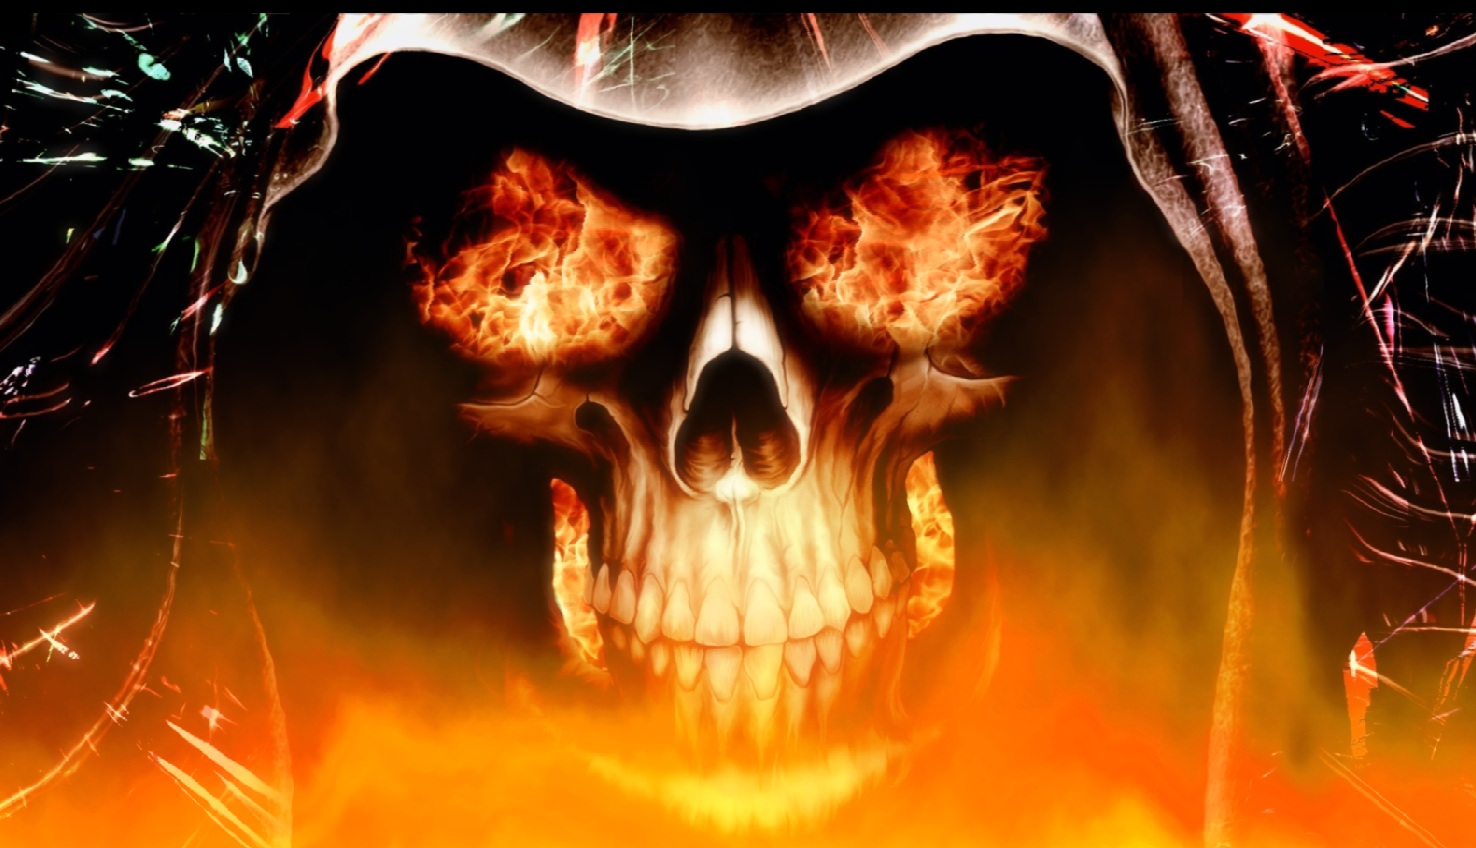 Fire Skull Backgrounds Images amp Pictures   Becuo 1476x848